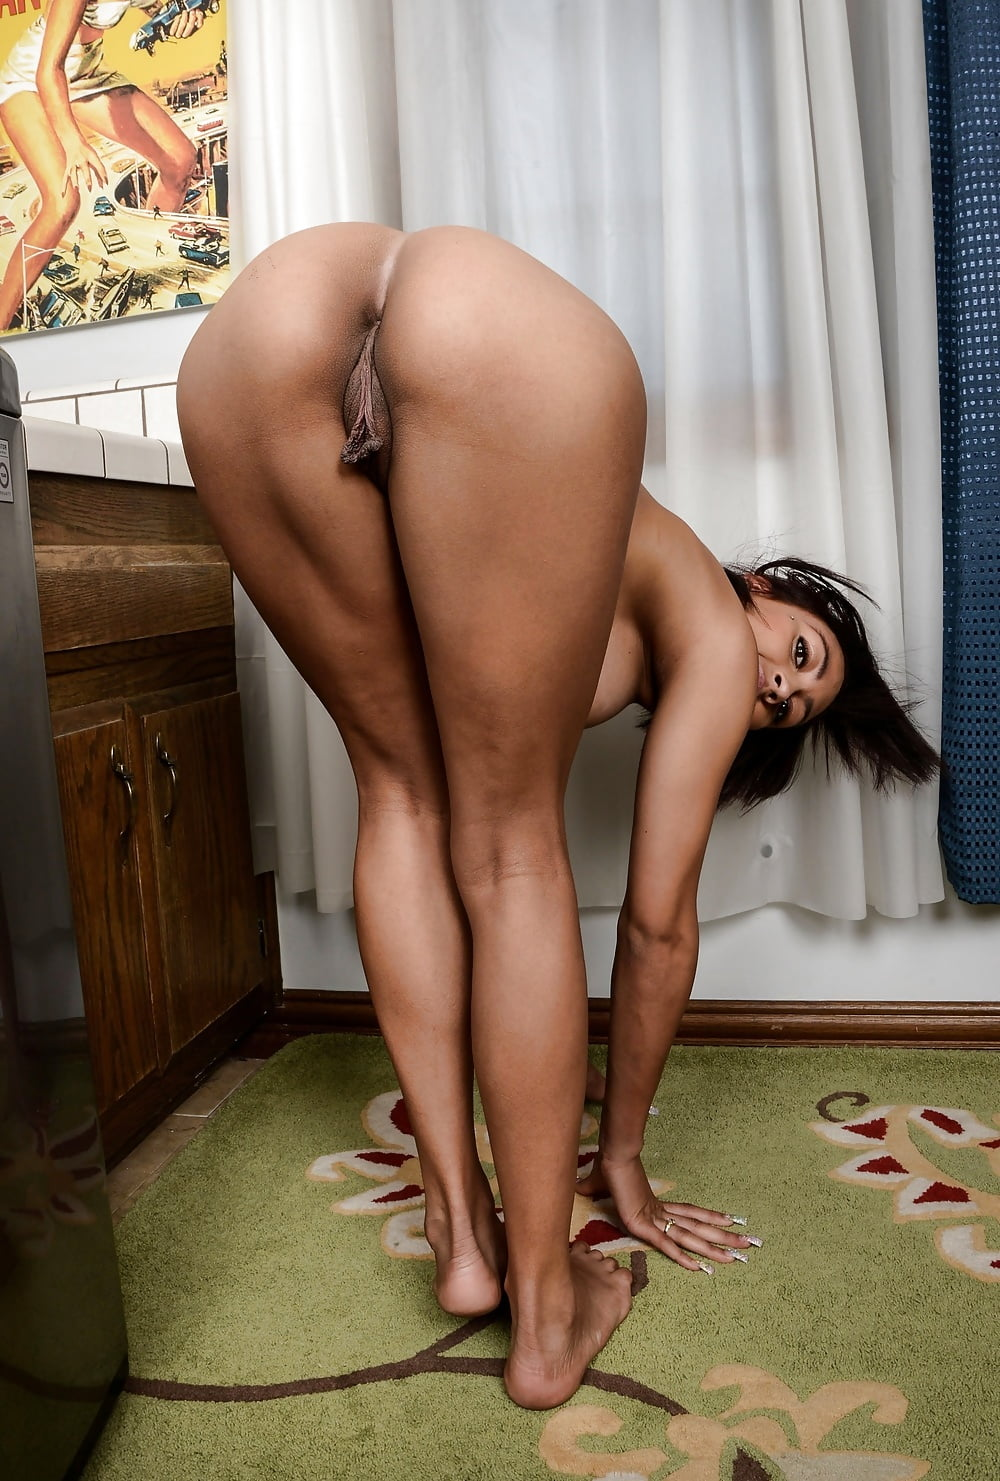 Latina butt legs nude, brittany ambers soaked in cum